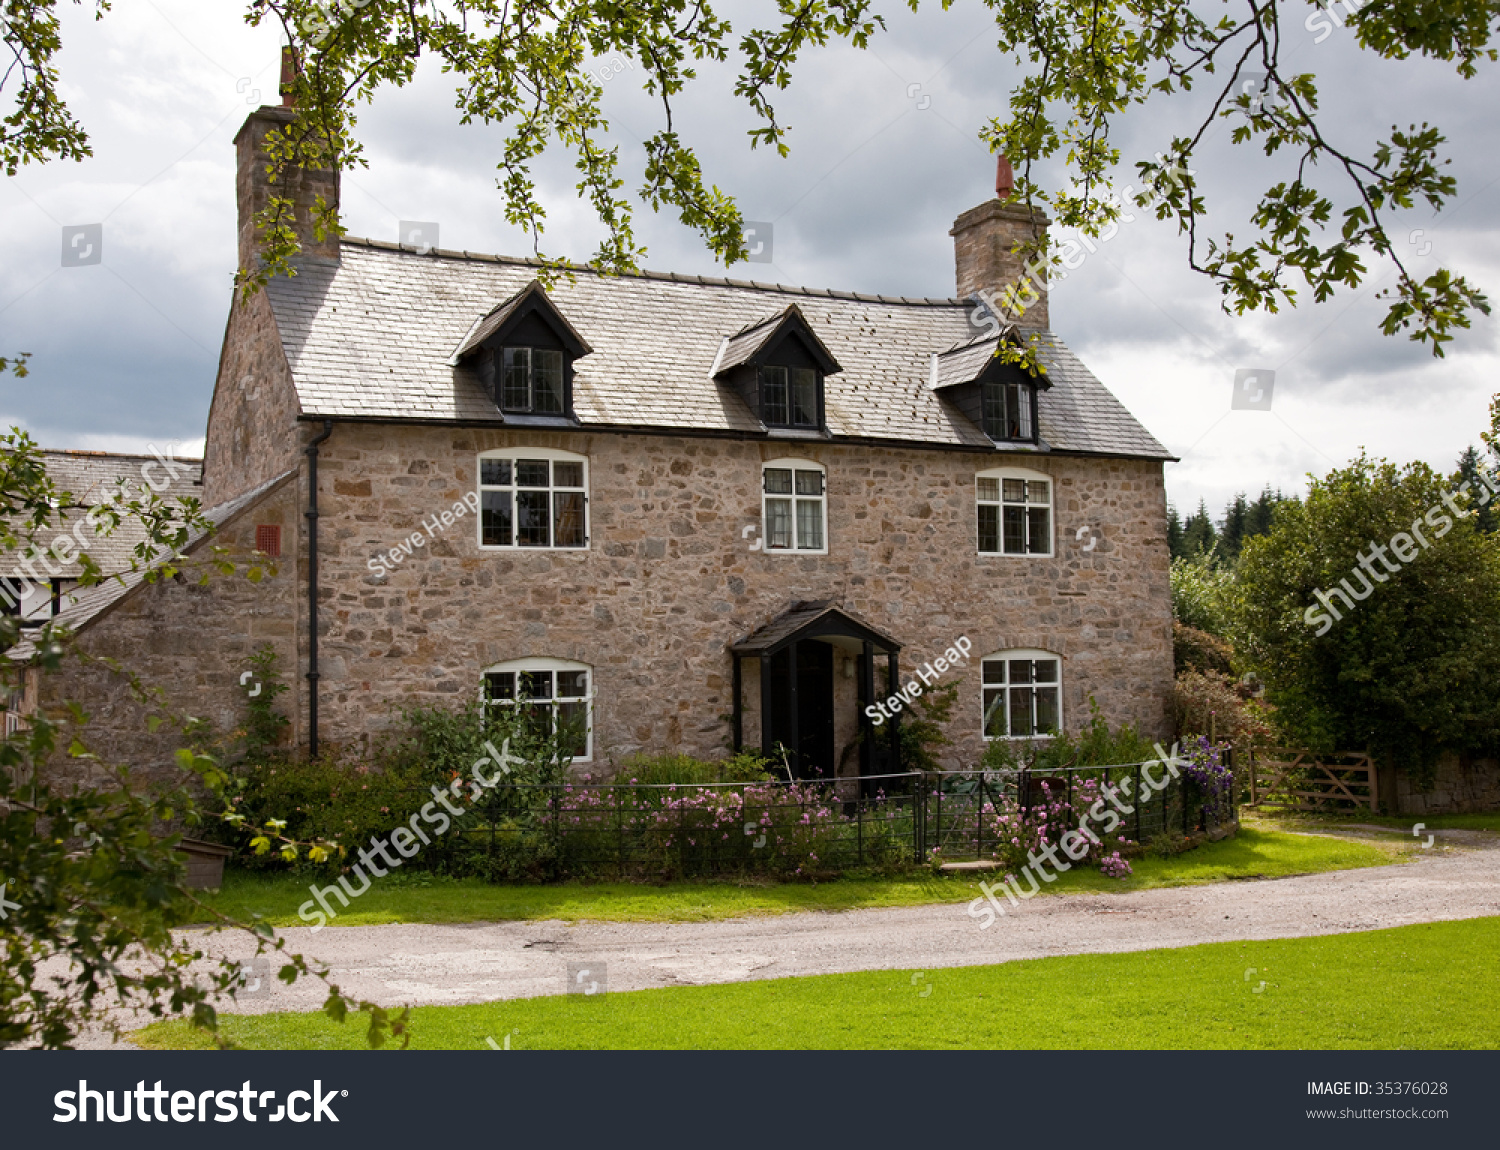 Old Stone Cottage In Rural English Farm Setting